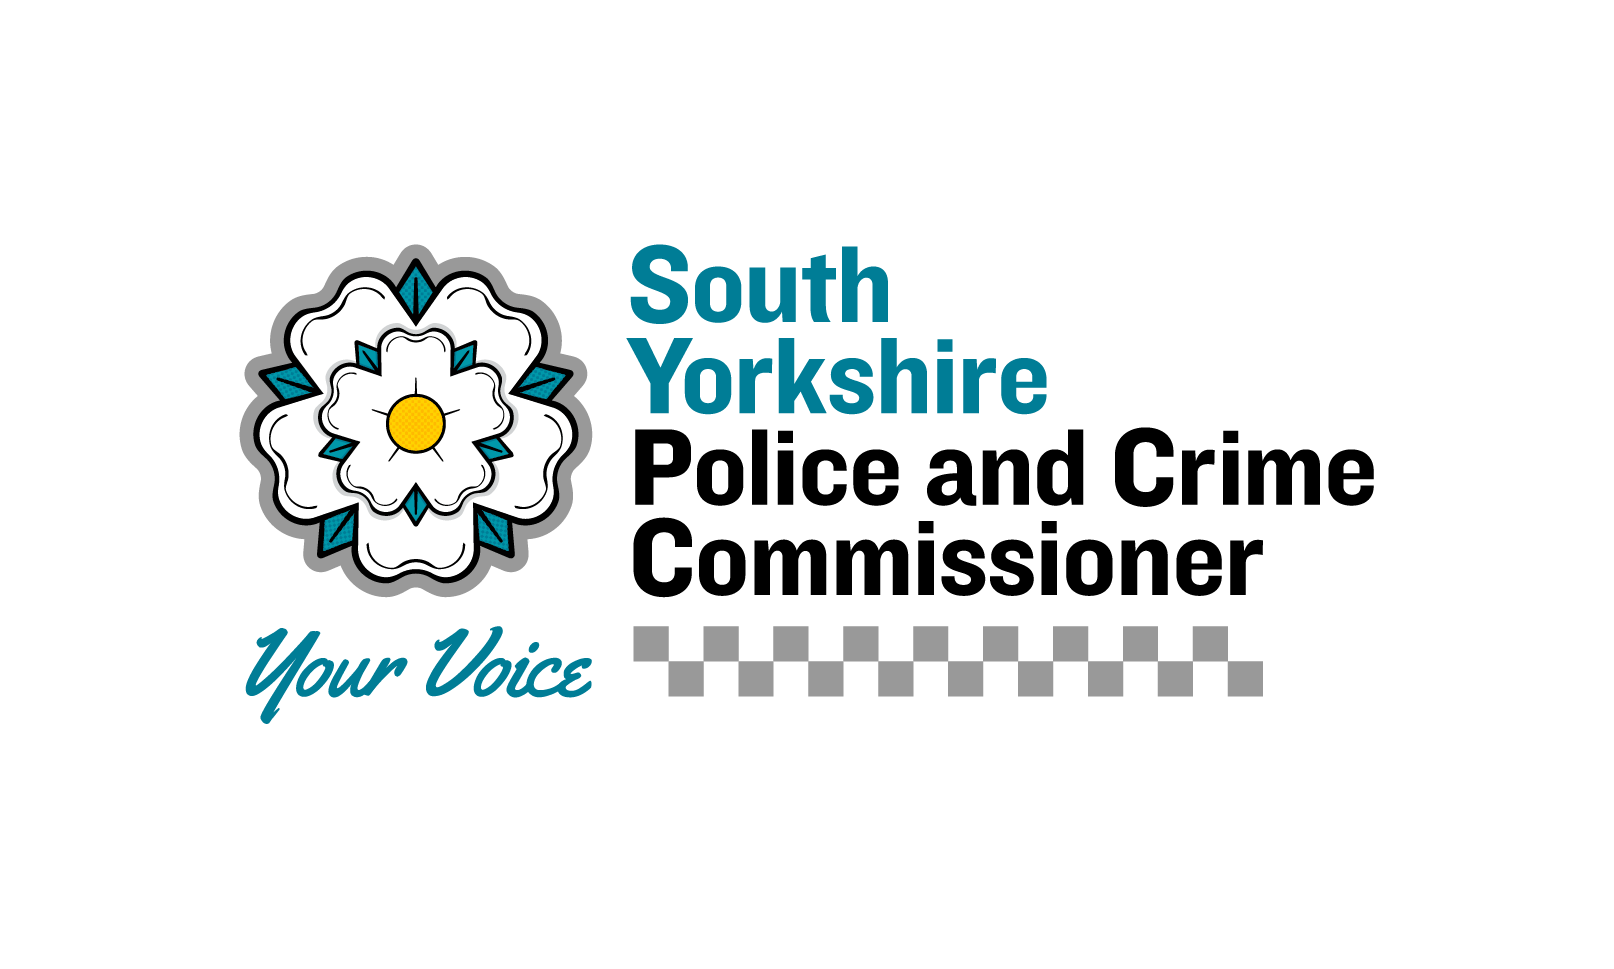 Police and Crime Plan for South Yorkshire launched